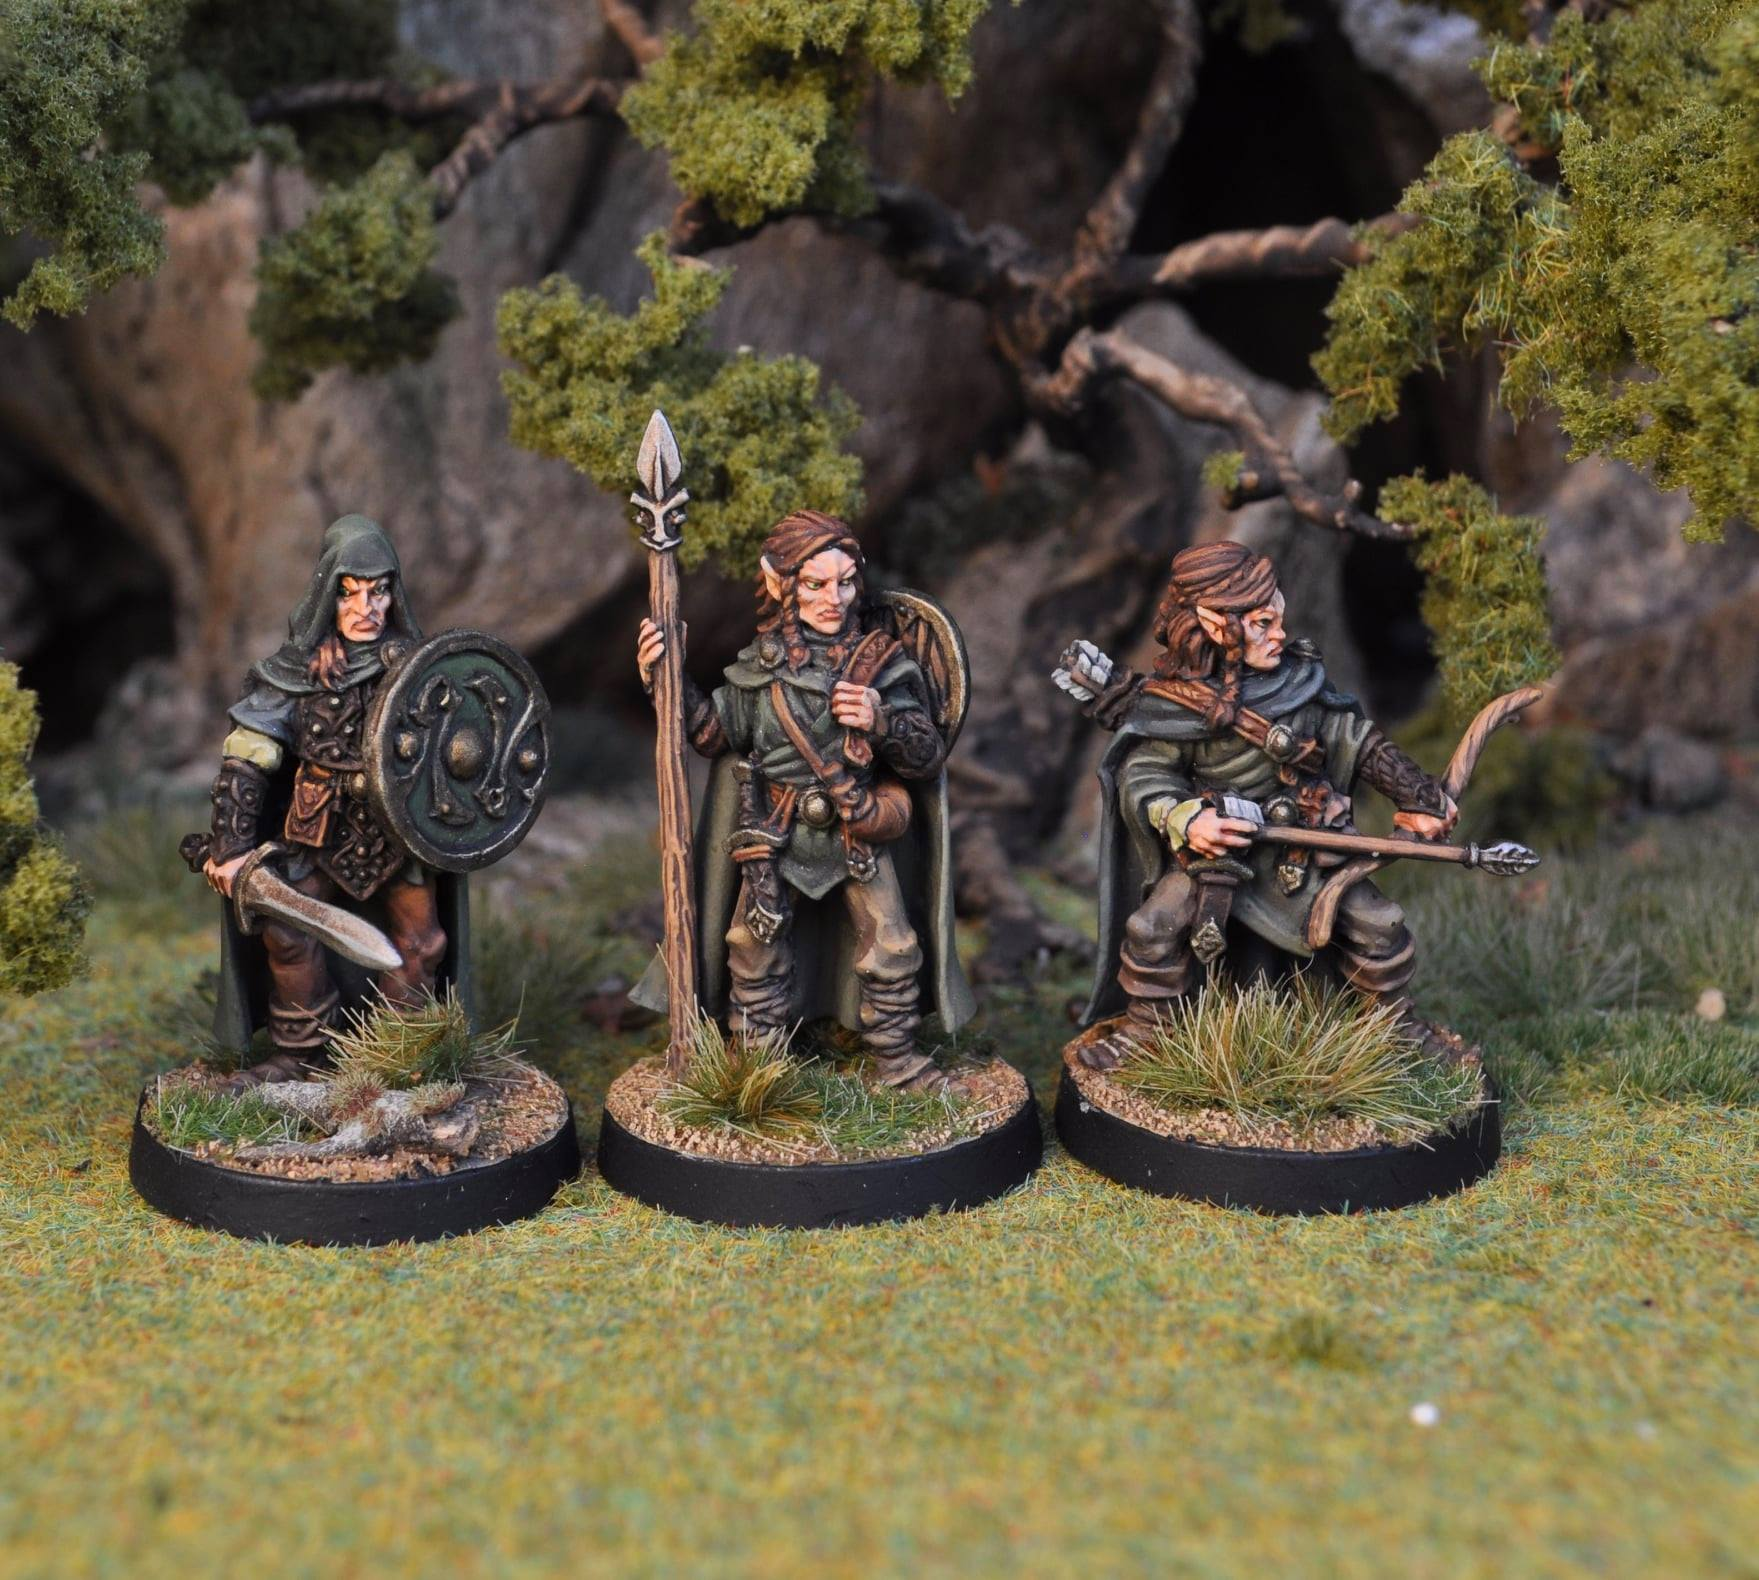 Wood Elves - Otherworld Miniatures